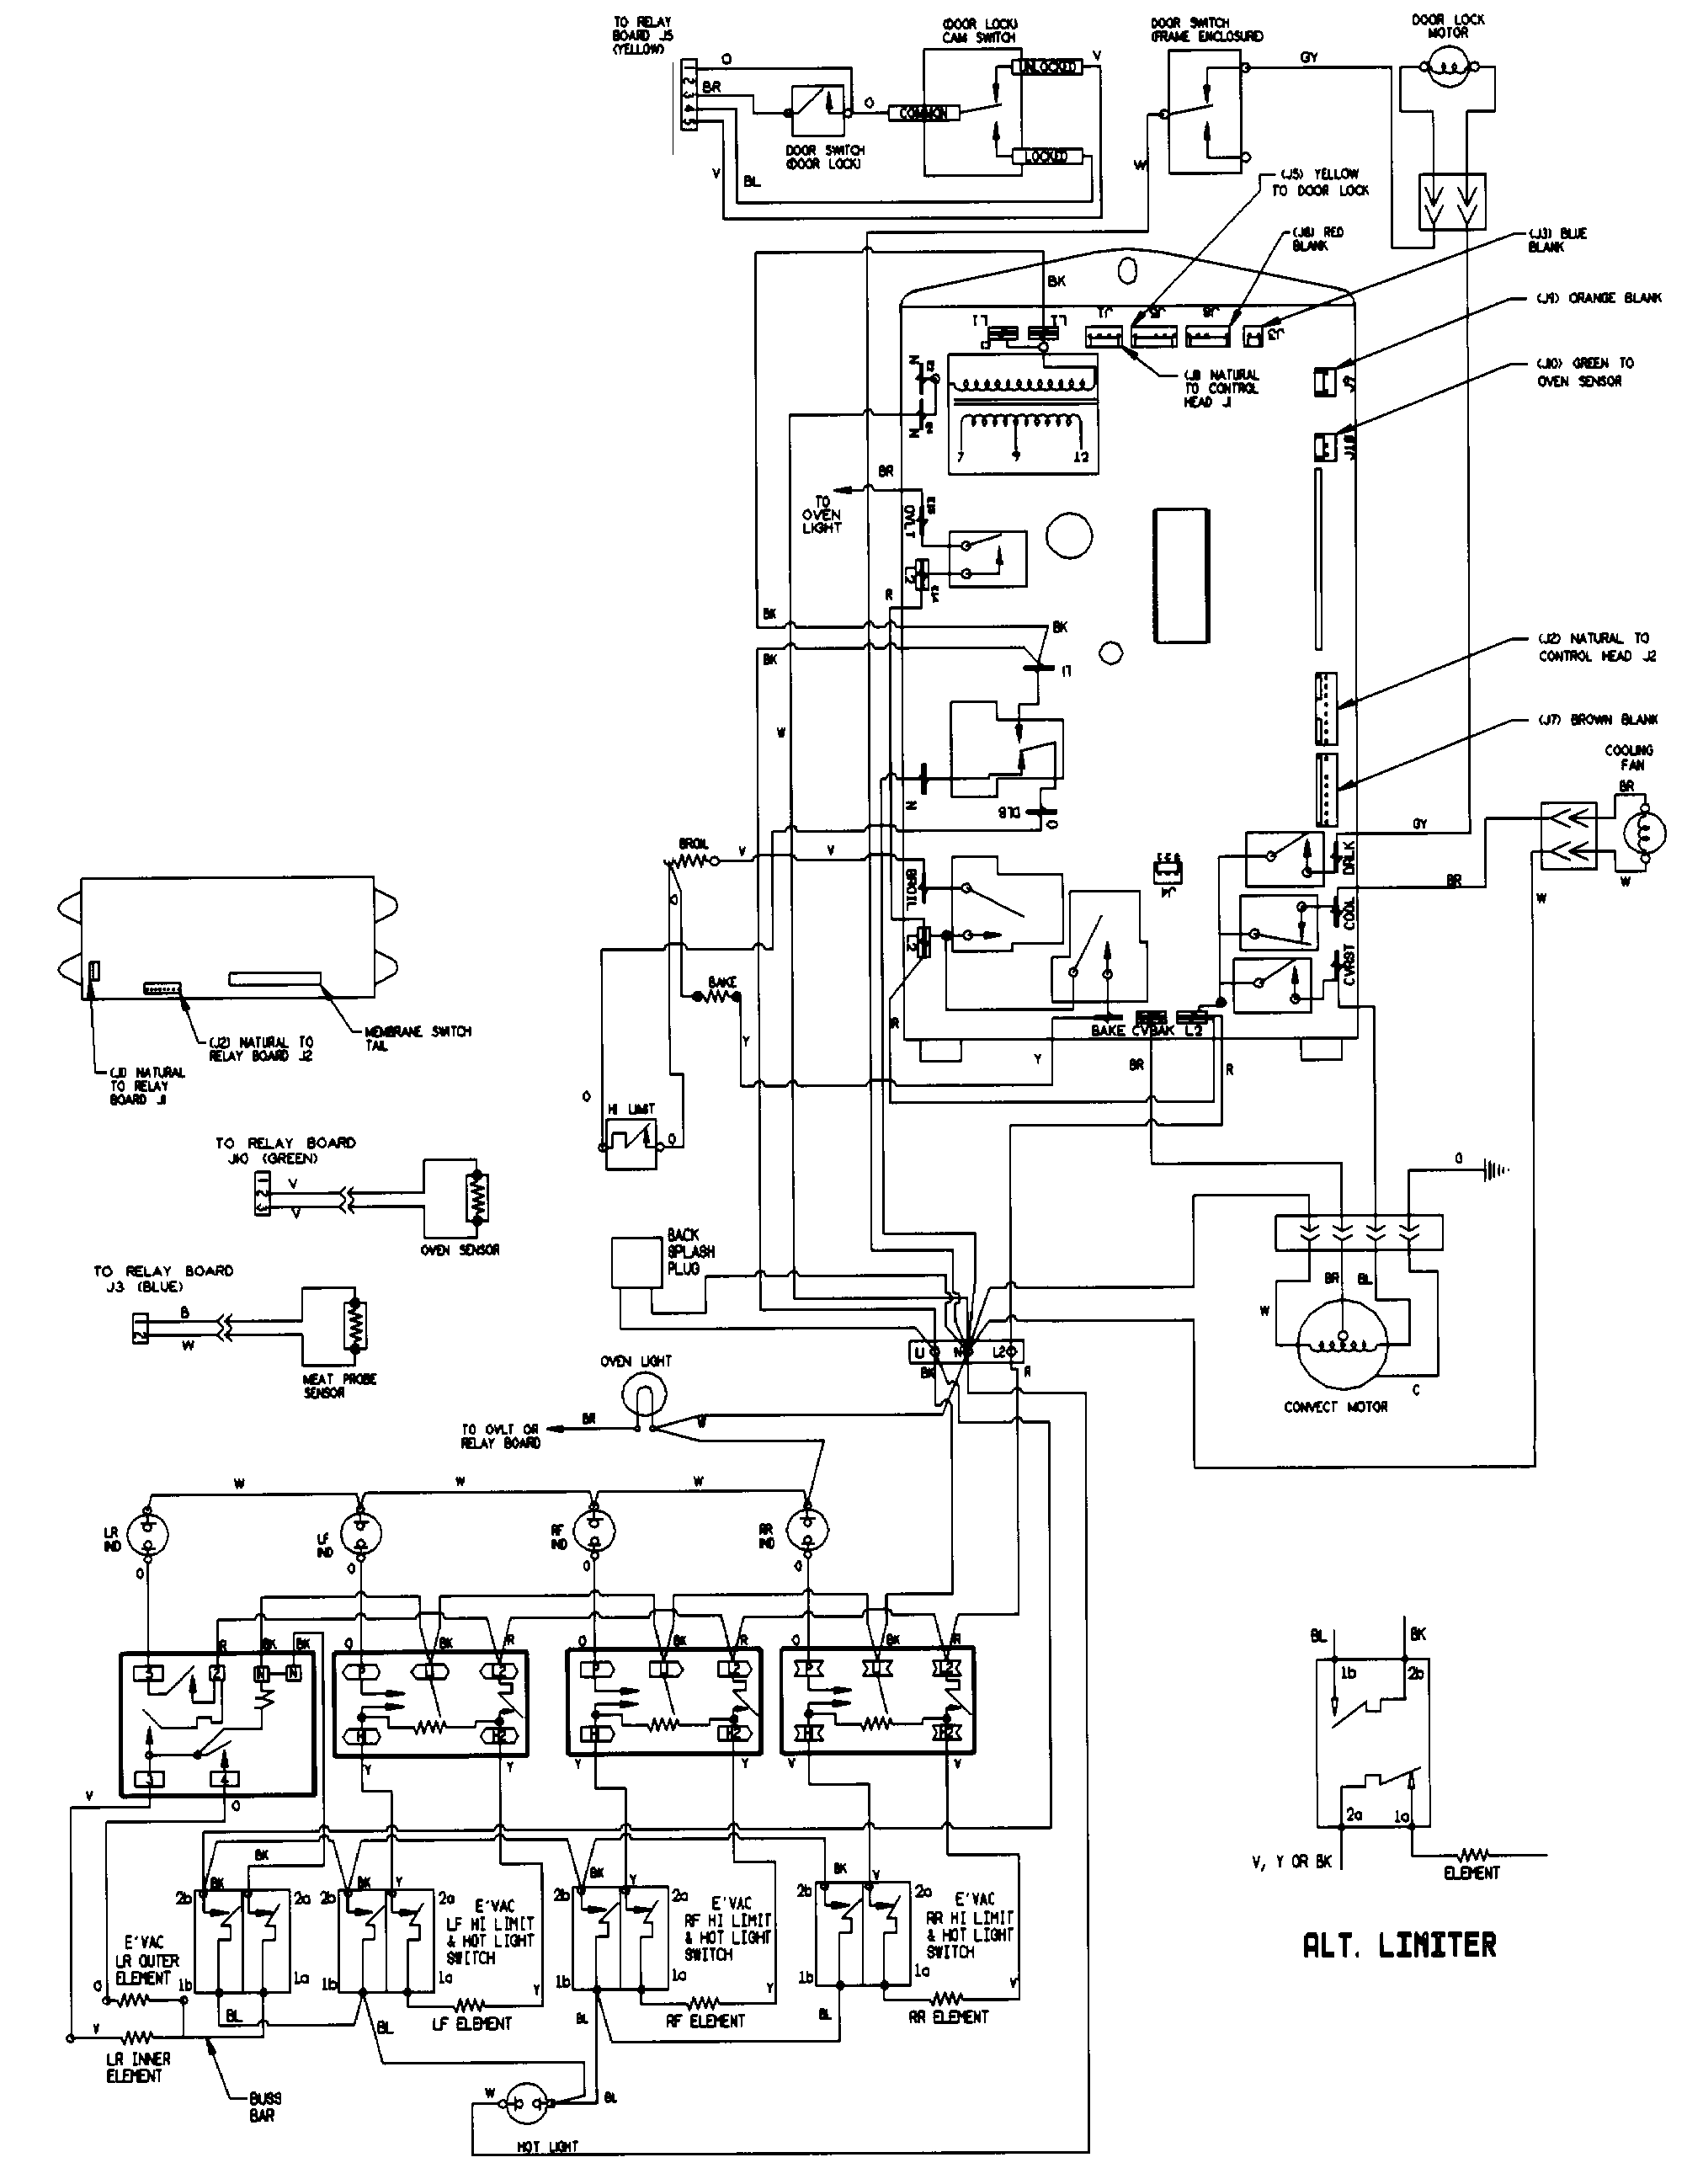 Frigidaire Electric Range Stove Oven Timer Wiring Diagram